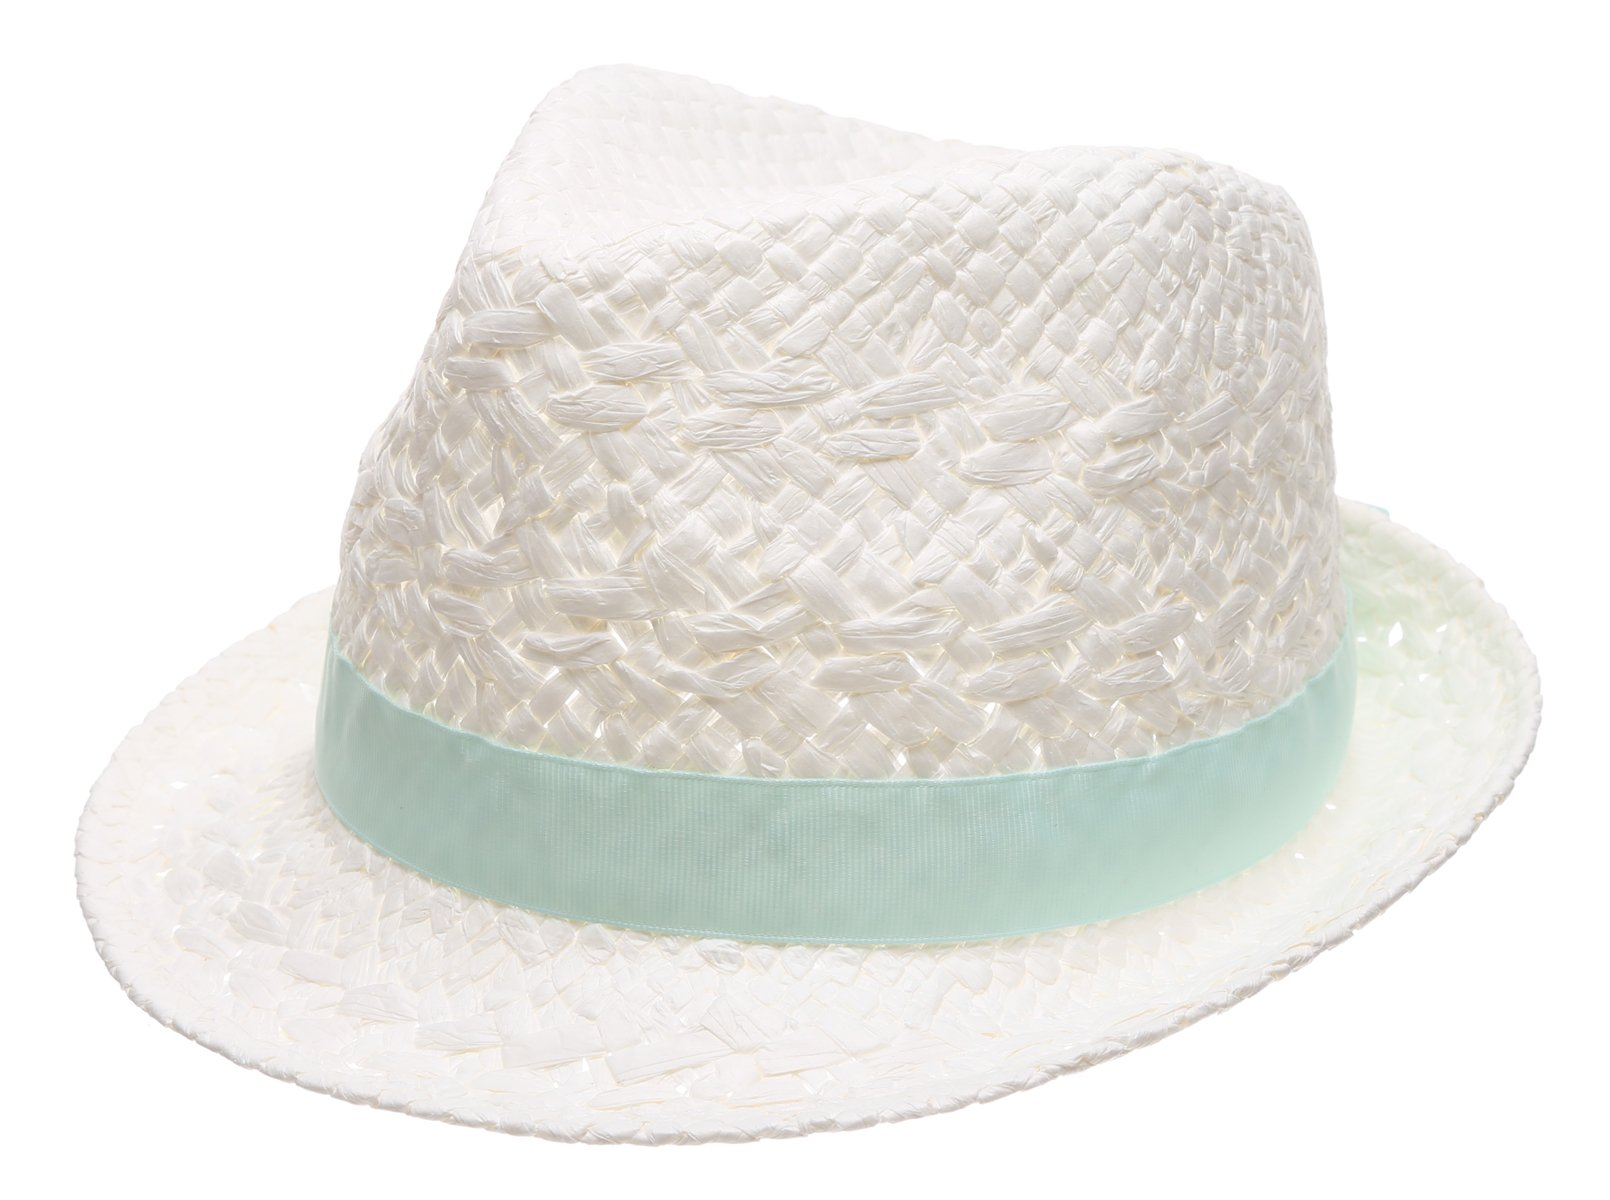 MIRMARU Women's Summer Trilby Short Brim Sun Straw Fedora Hat Cap With Bow Band(Solid Band,White)